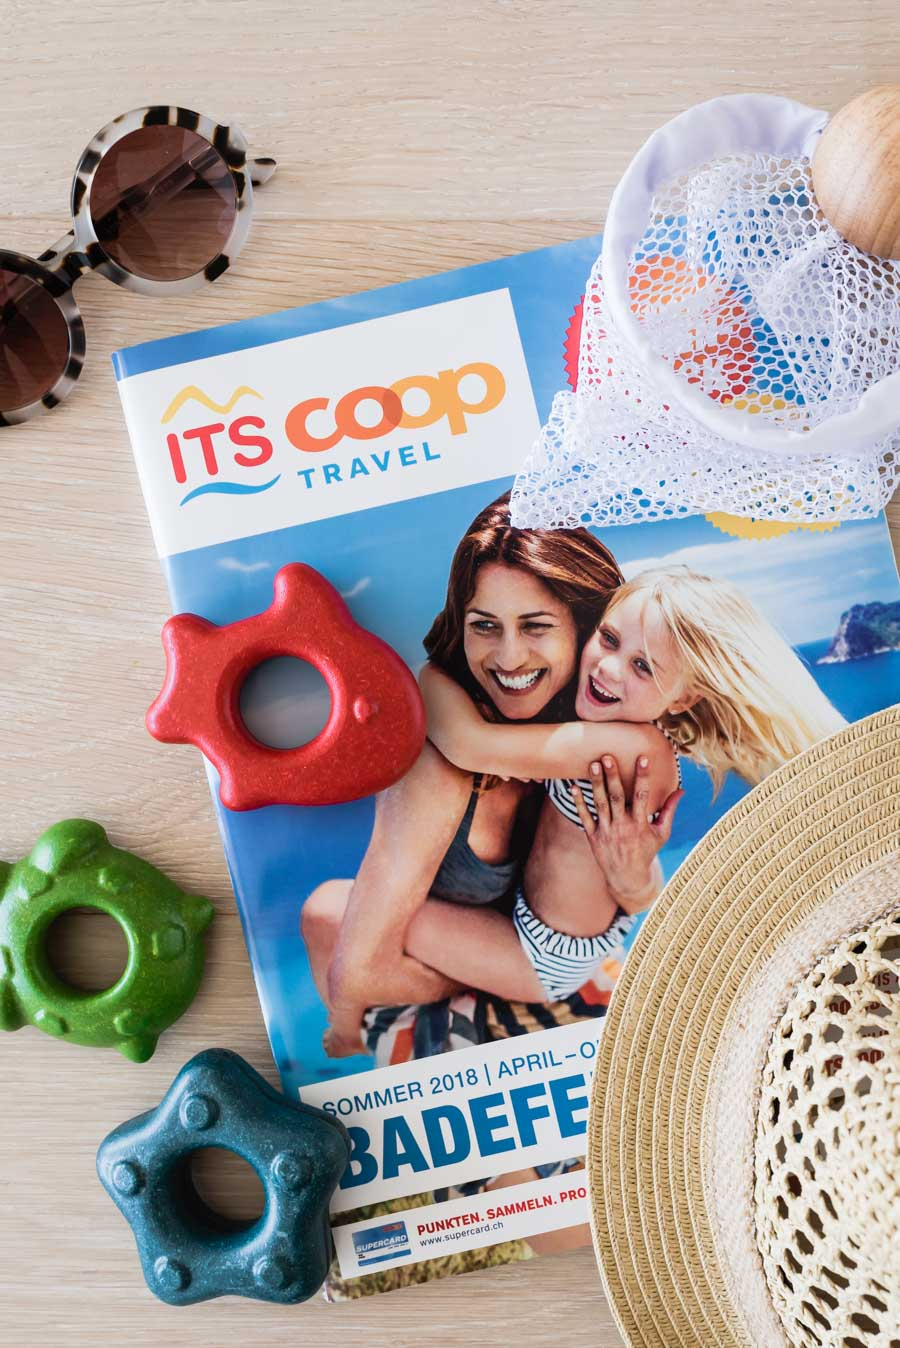 Keeping children busy when traveling: This is our holiday surprise bag # holiday happiness # holiday with children # holiday with children # family holiday # family holiday